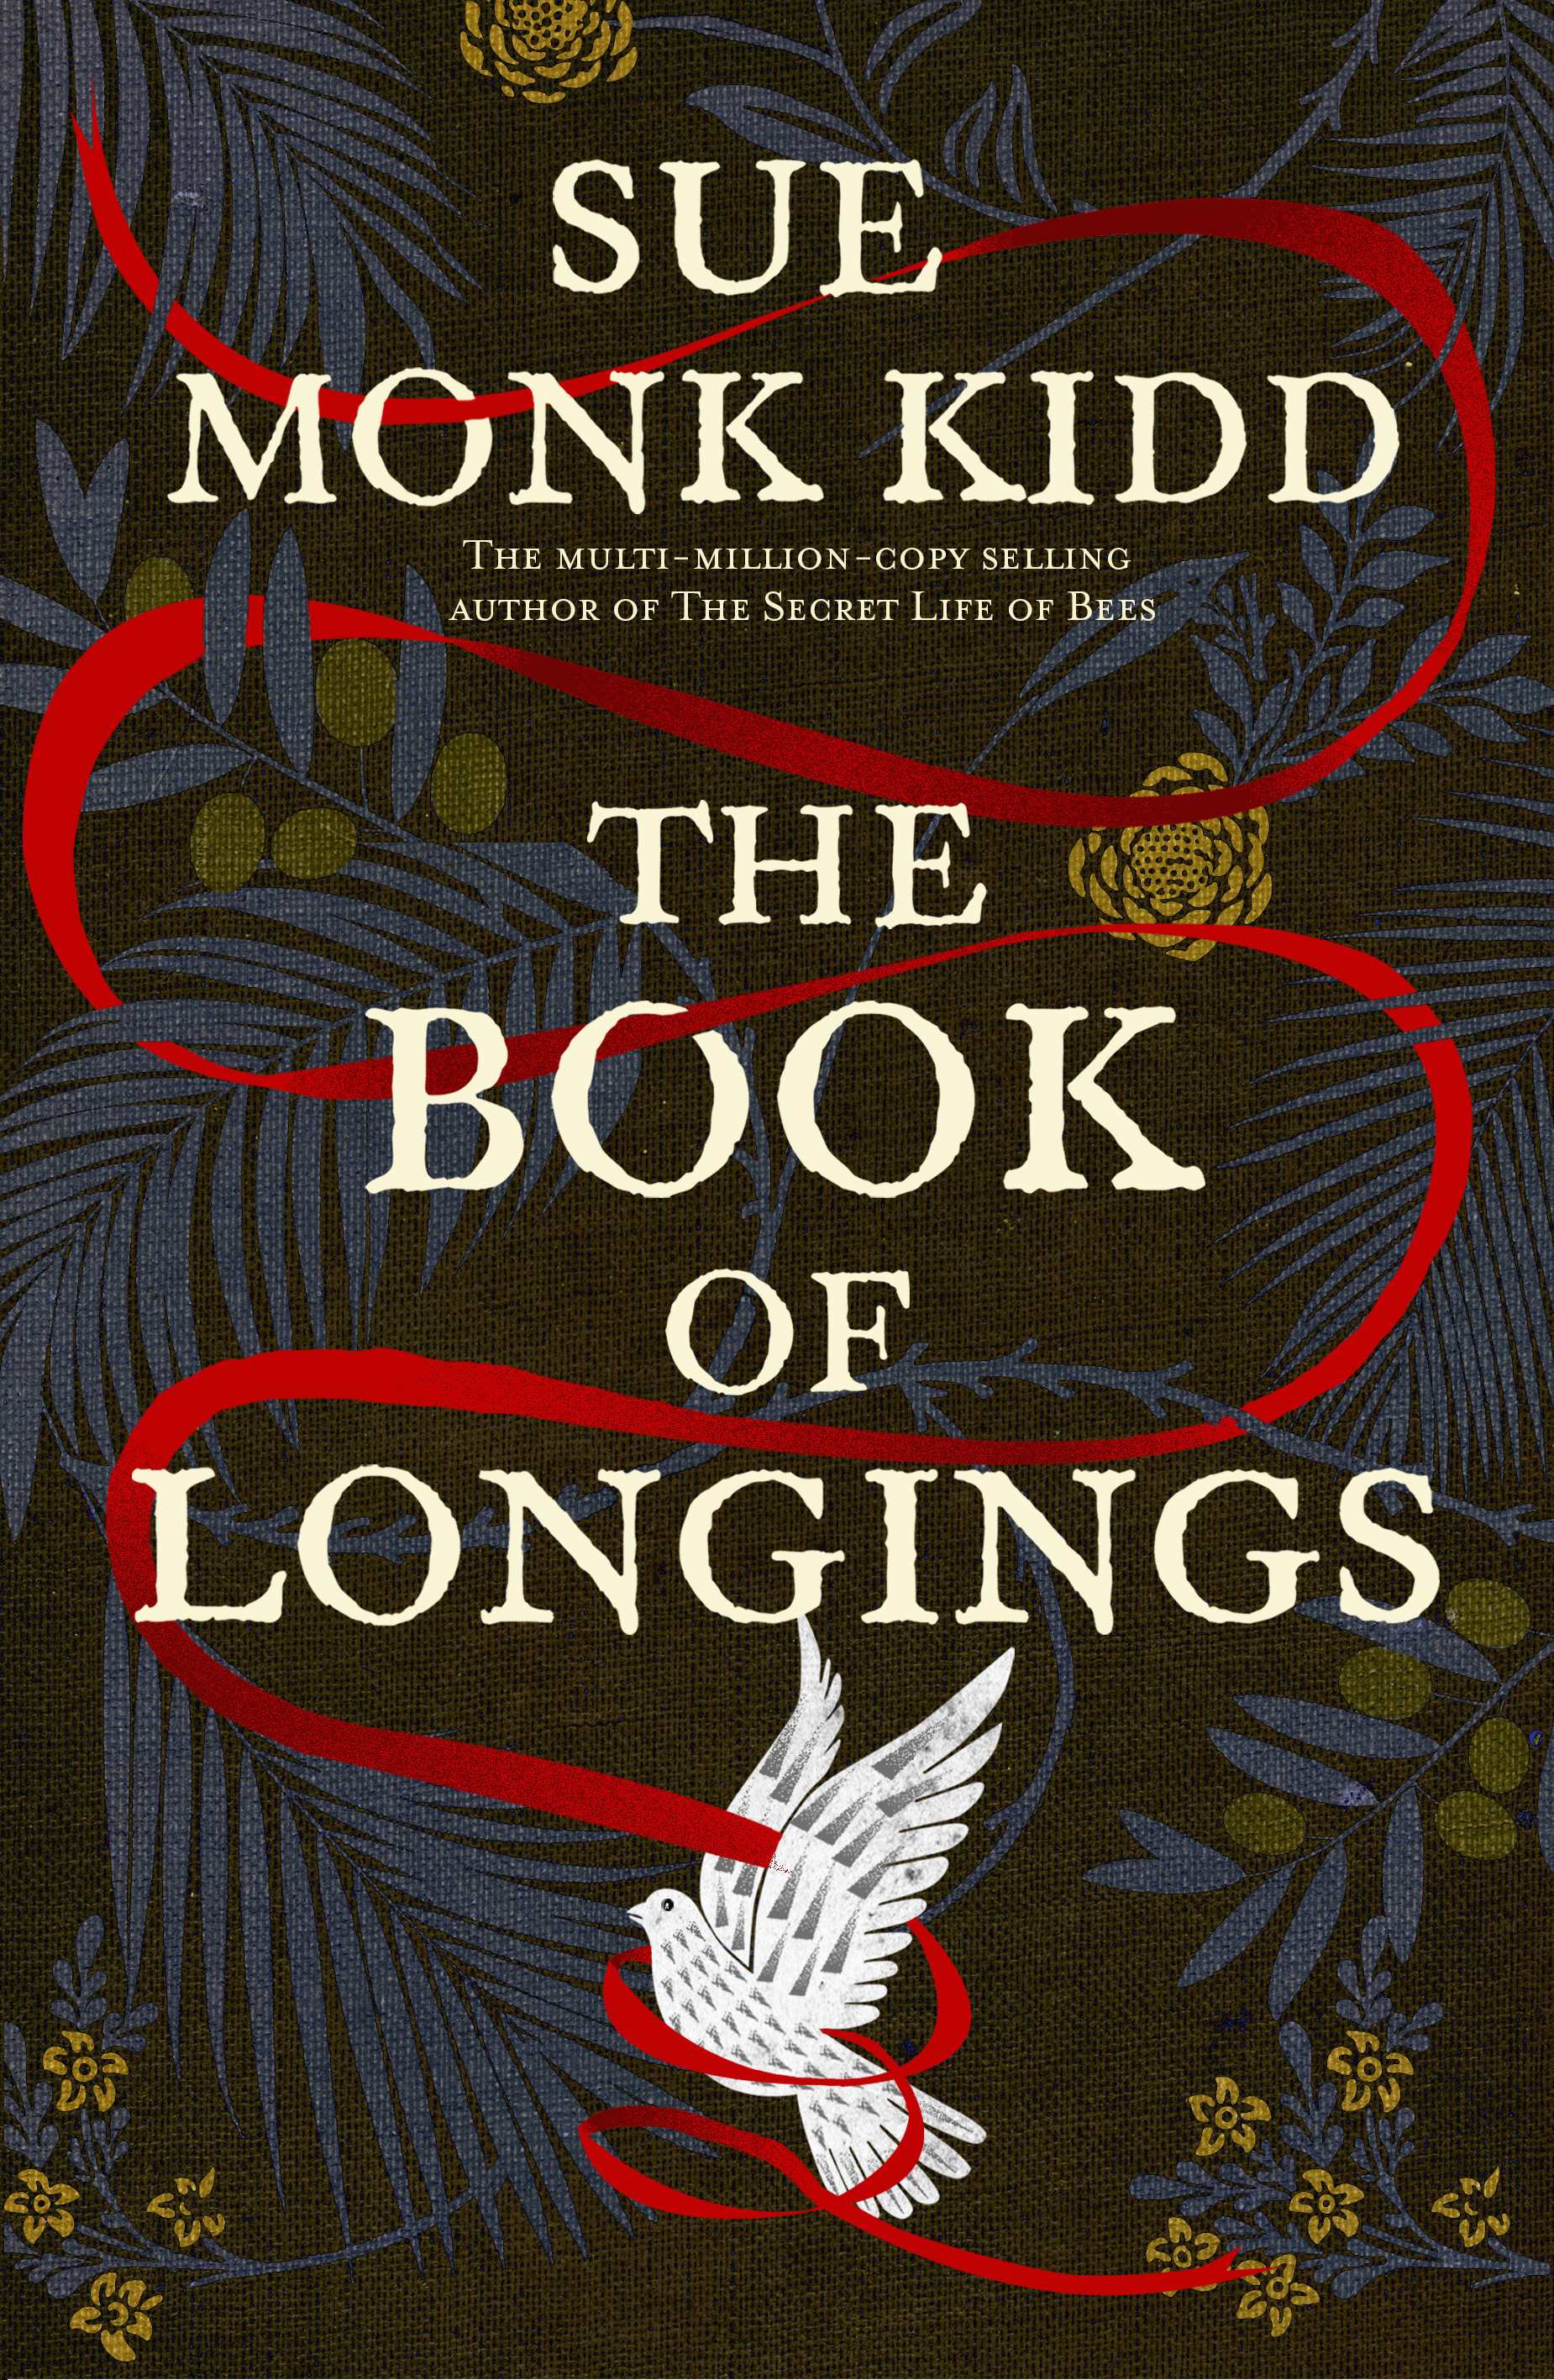 Book of longings visual